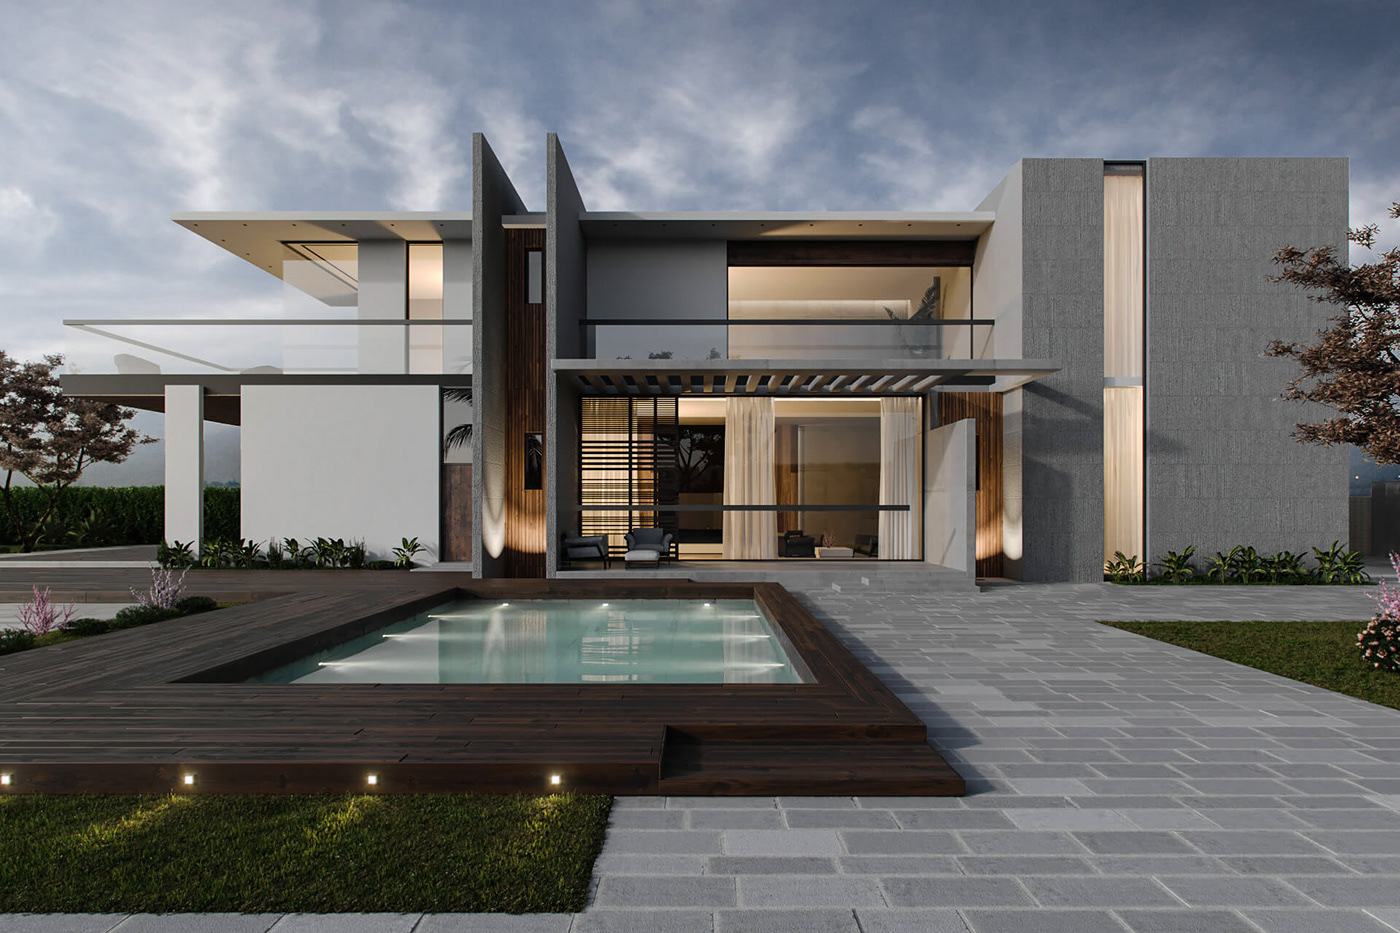 Modern Villa Modern Villa Exterior 3dvisualization On Behance